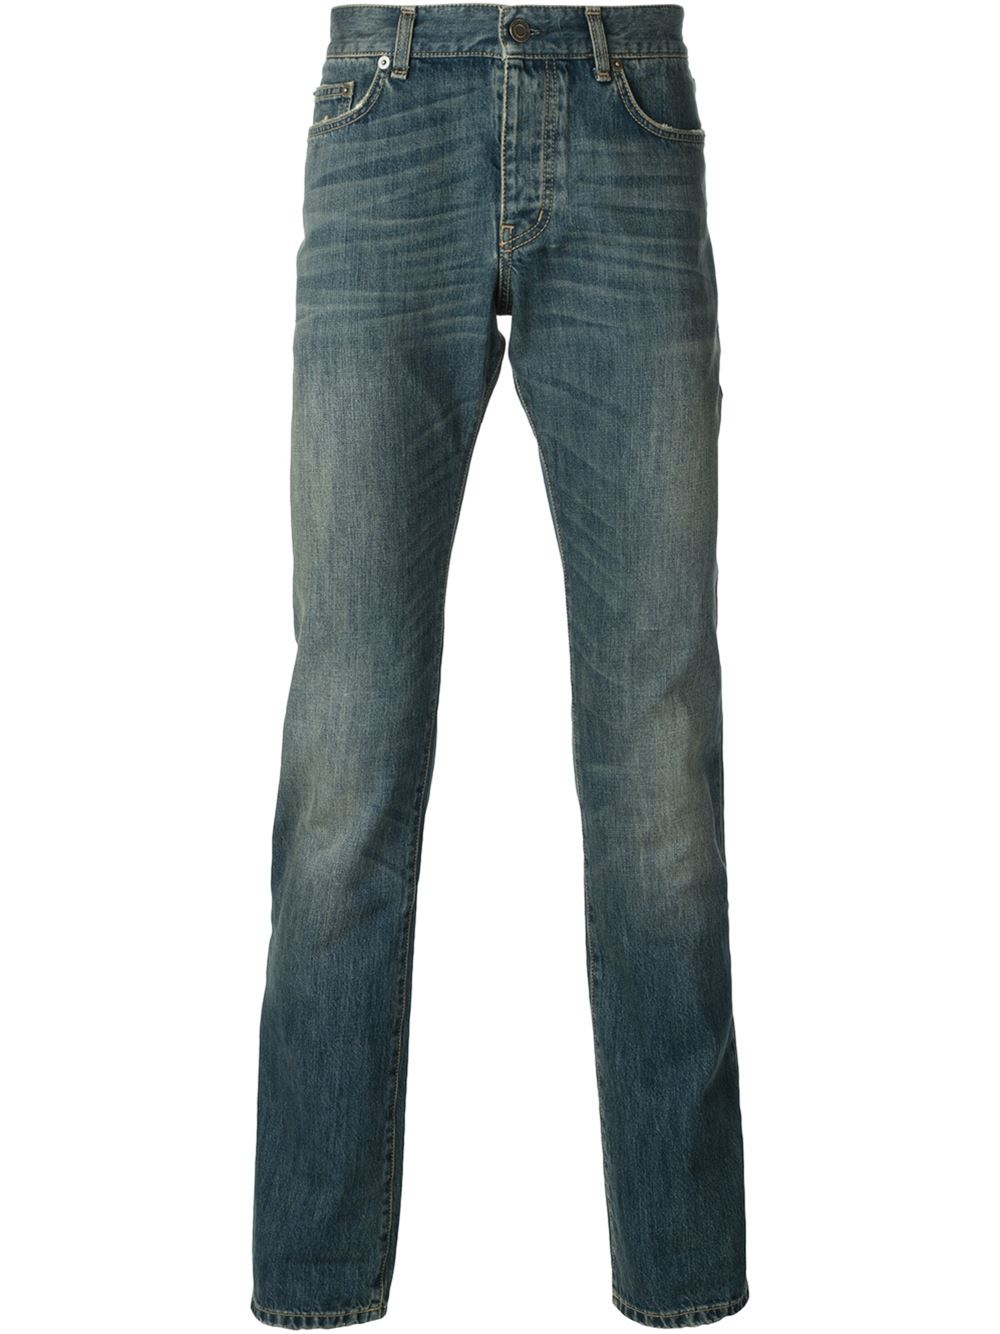 saint laurent stonewash jeans in blue for men lyst. Black Bedroom Furniture Sets. Home Design Ideas